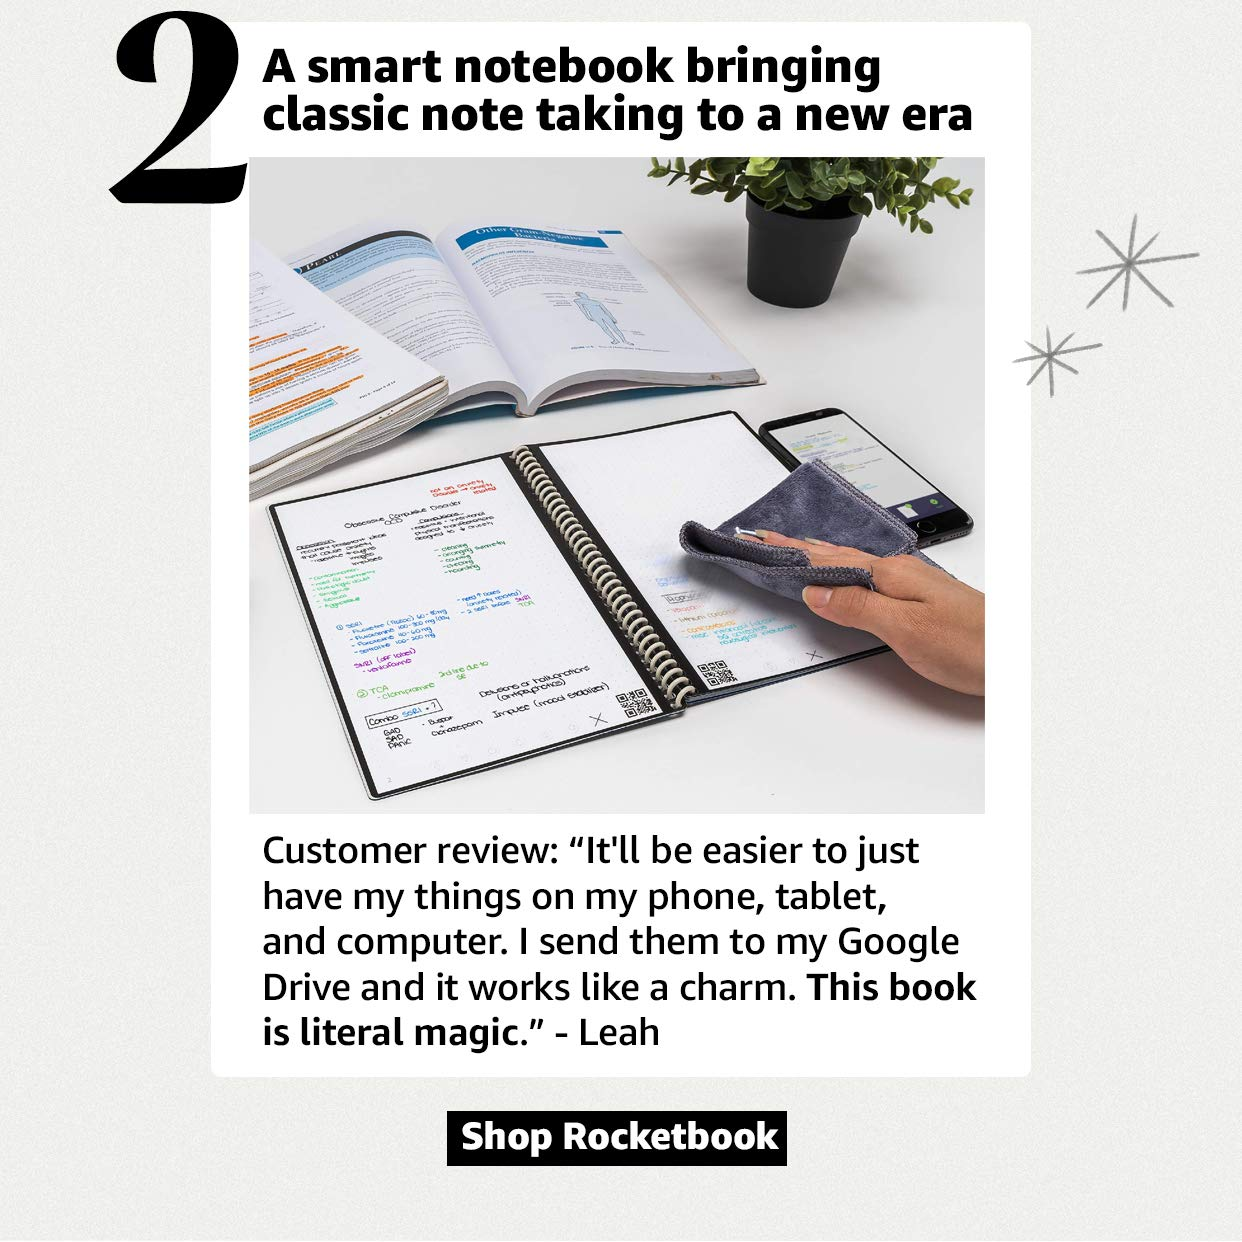 A mart notebook bringing classic note taking to a new era